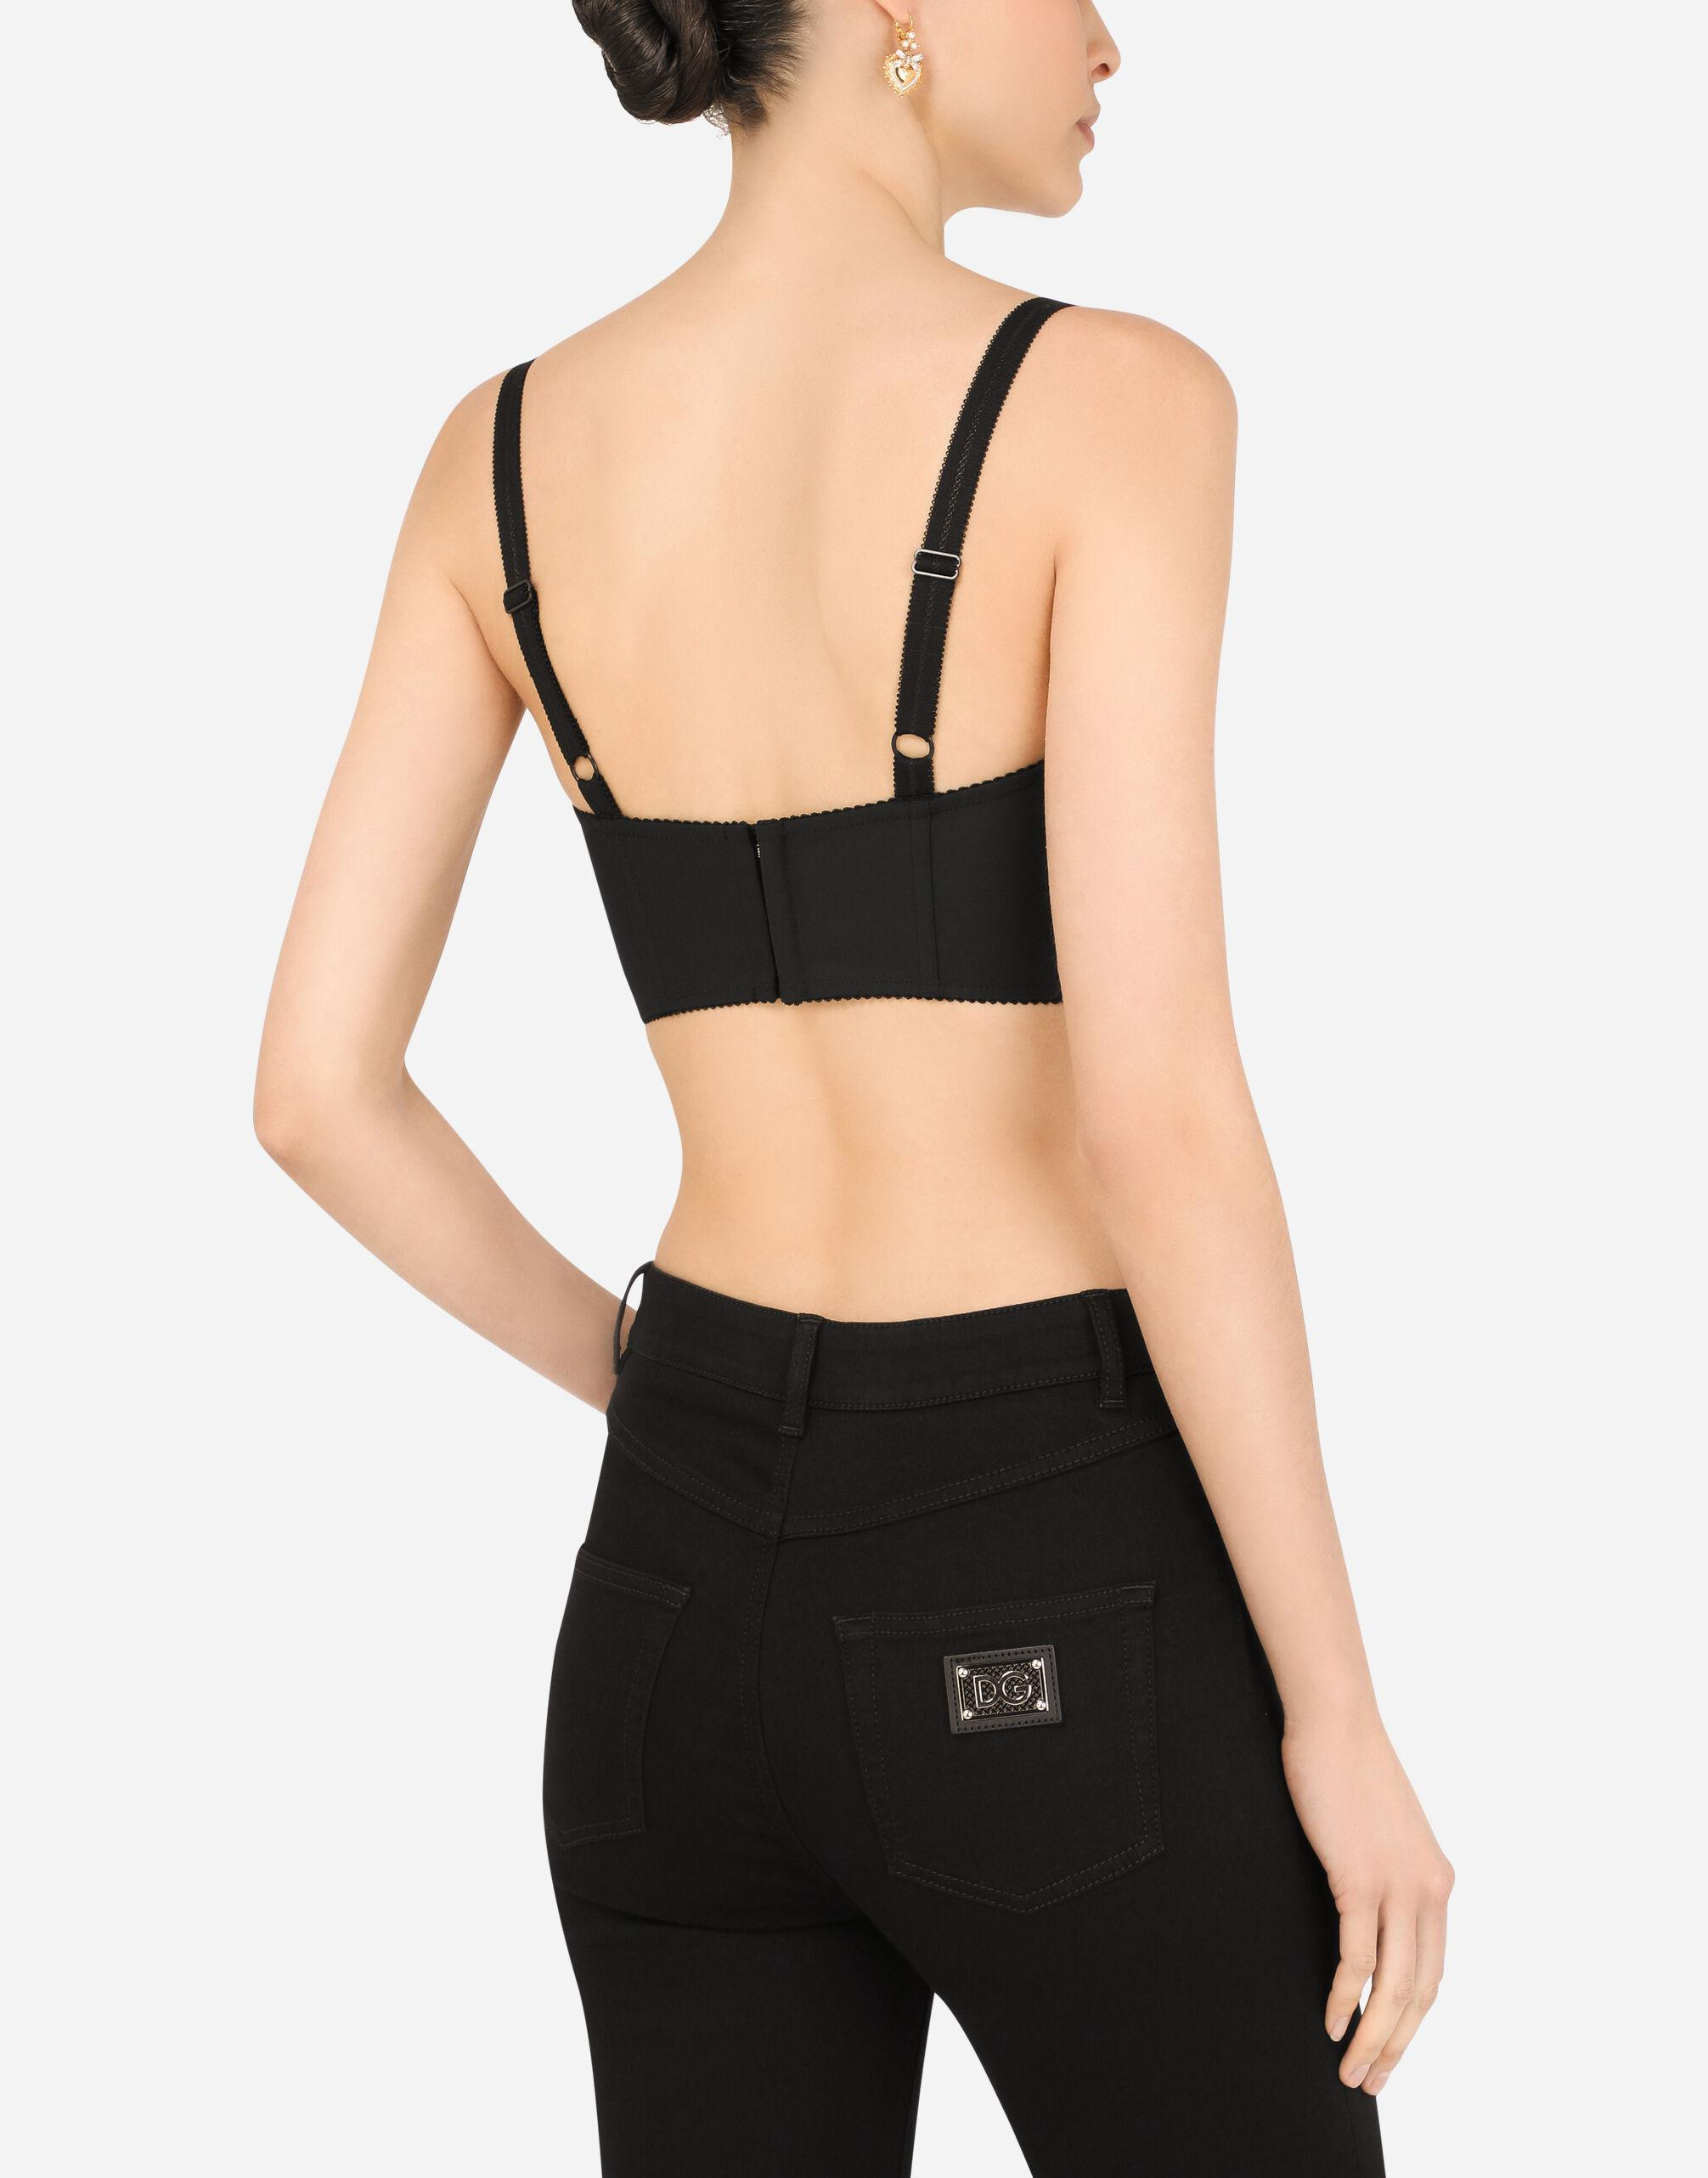 Bustier top with sweetheart neckline 3